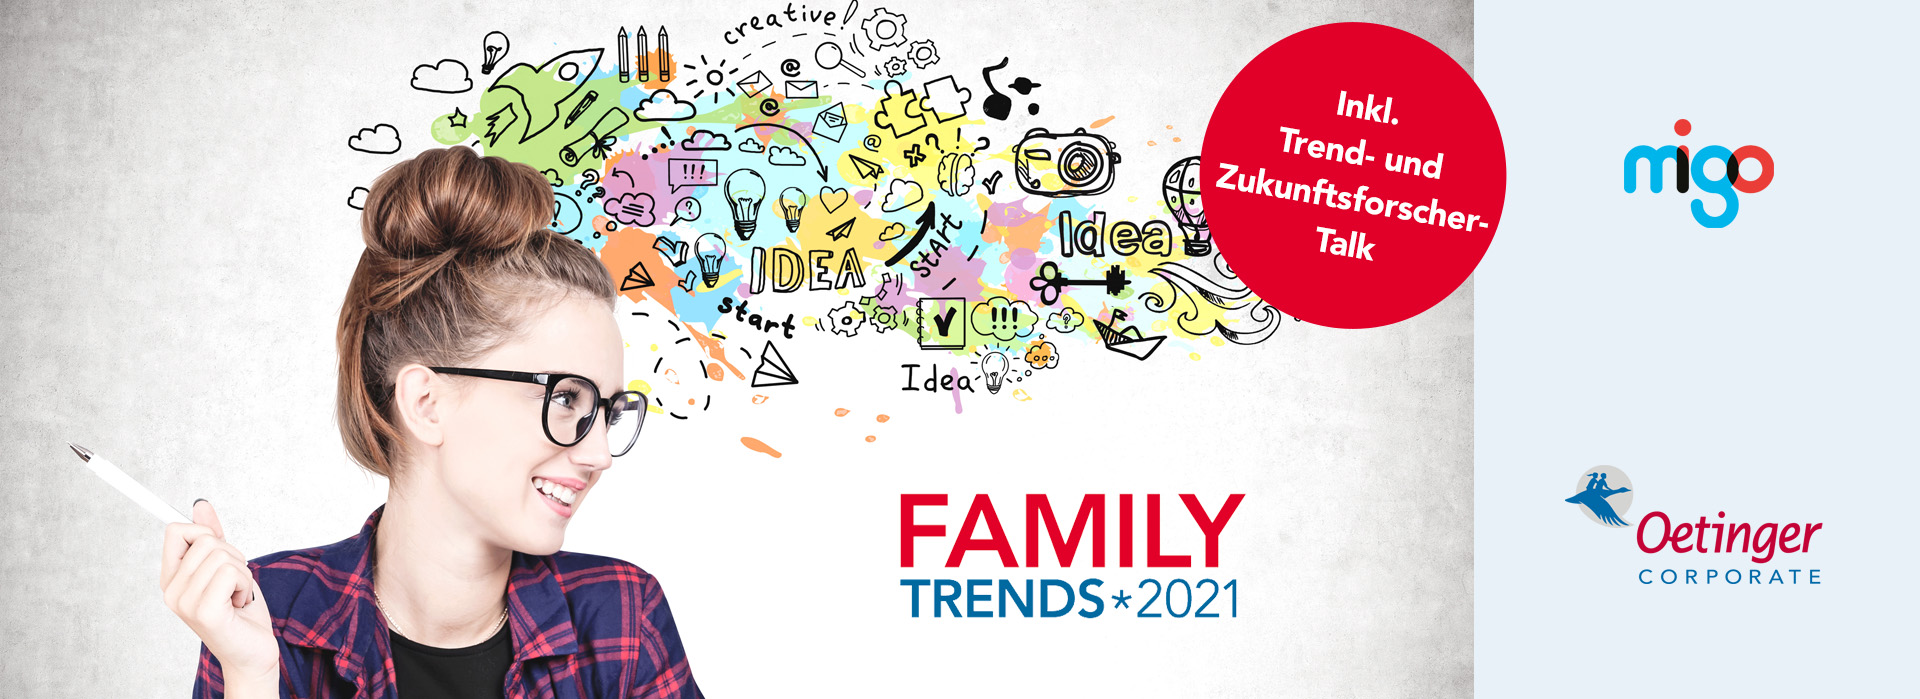 Family Trends 2021